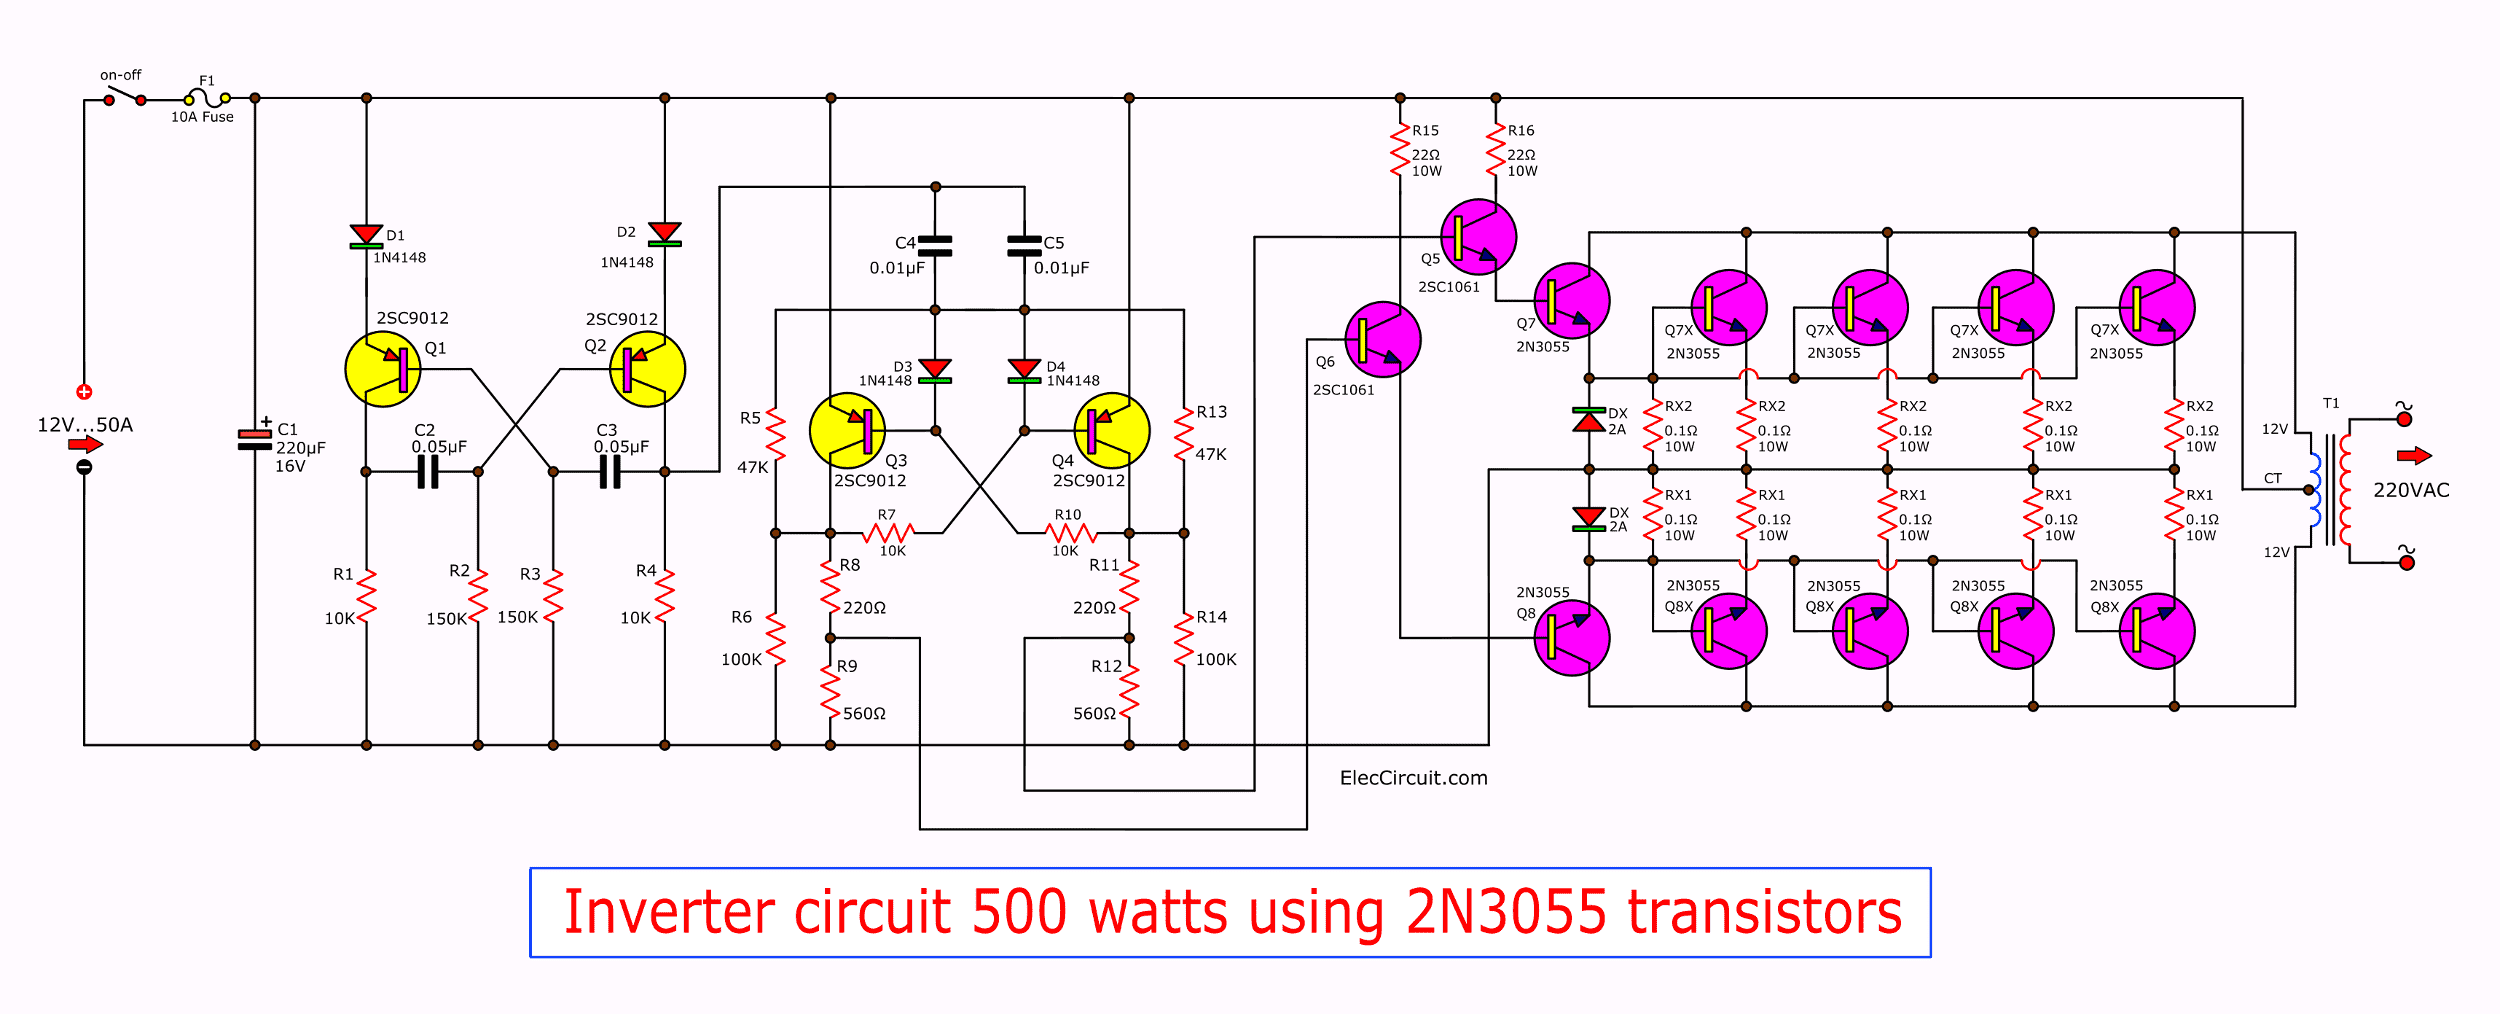 125 Vdc Power Supply Schematic